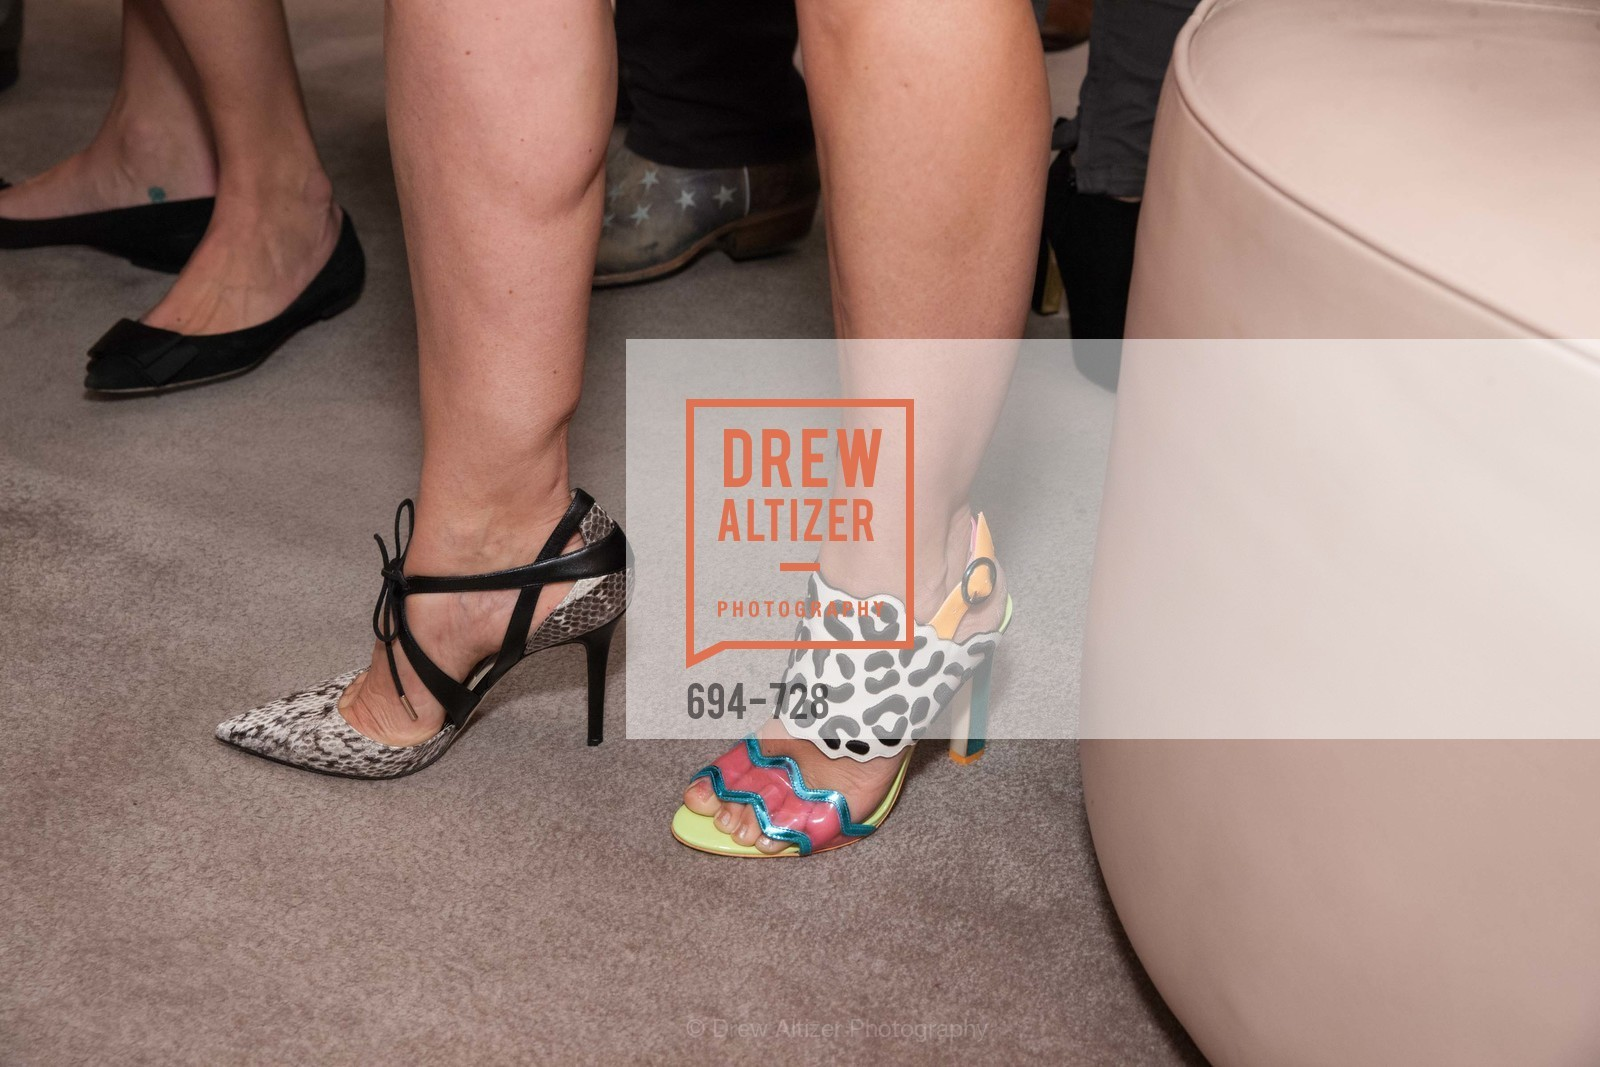 Atmosphere, JIMMY CHOO Bubbles, Bites & Stiletto's to benefit AirCraft Casualty Emotional Support Services (ACCESS), May 15th, 2015, Photo,Drew Altizer, Drew Altizer Photography, full-service event agency, private events, San Francisco photographer, photographer California